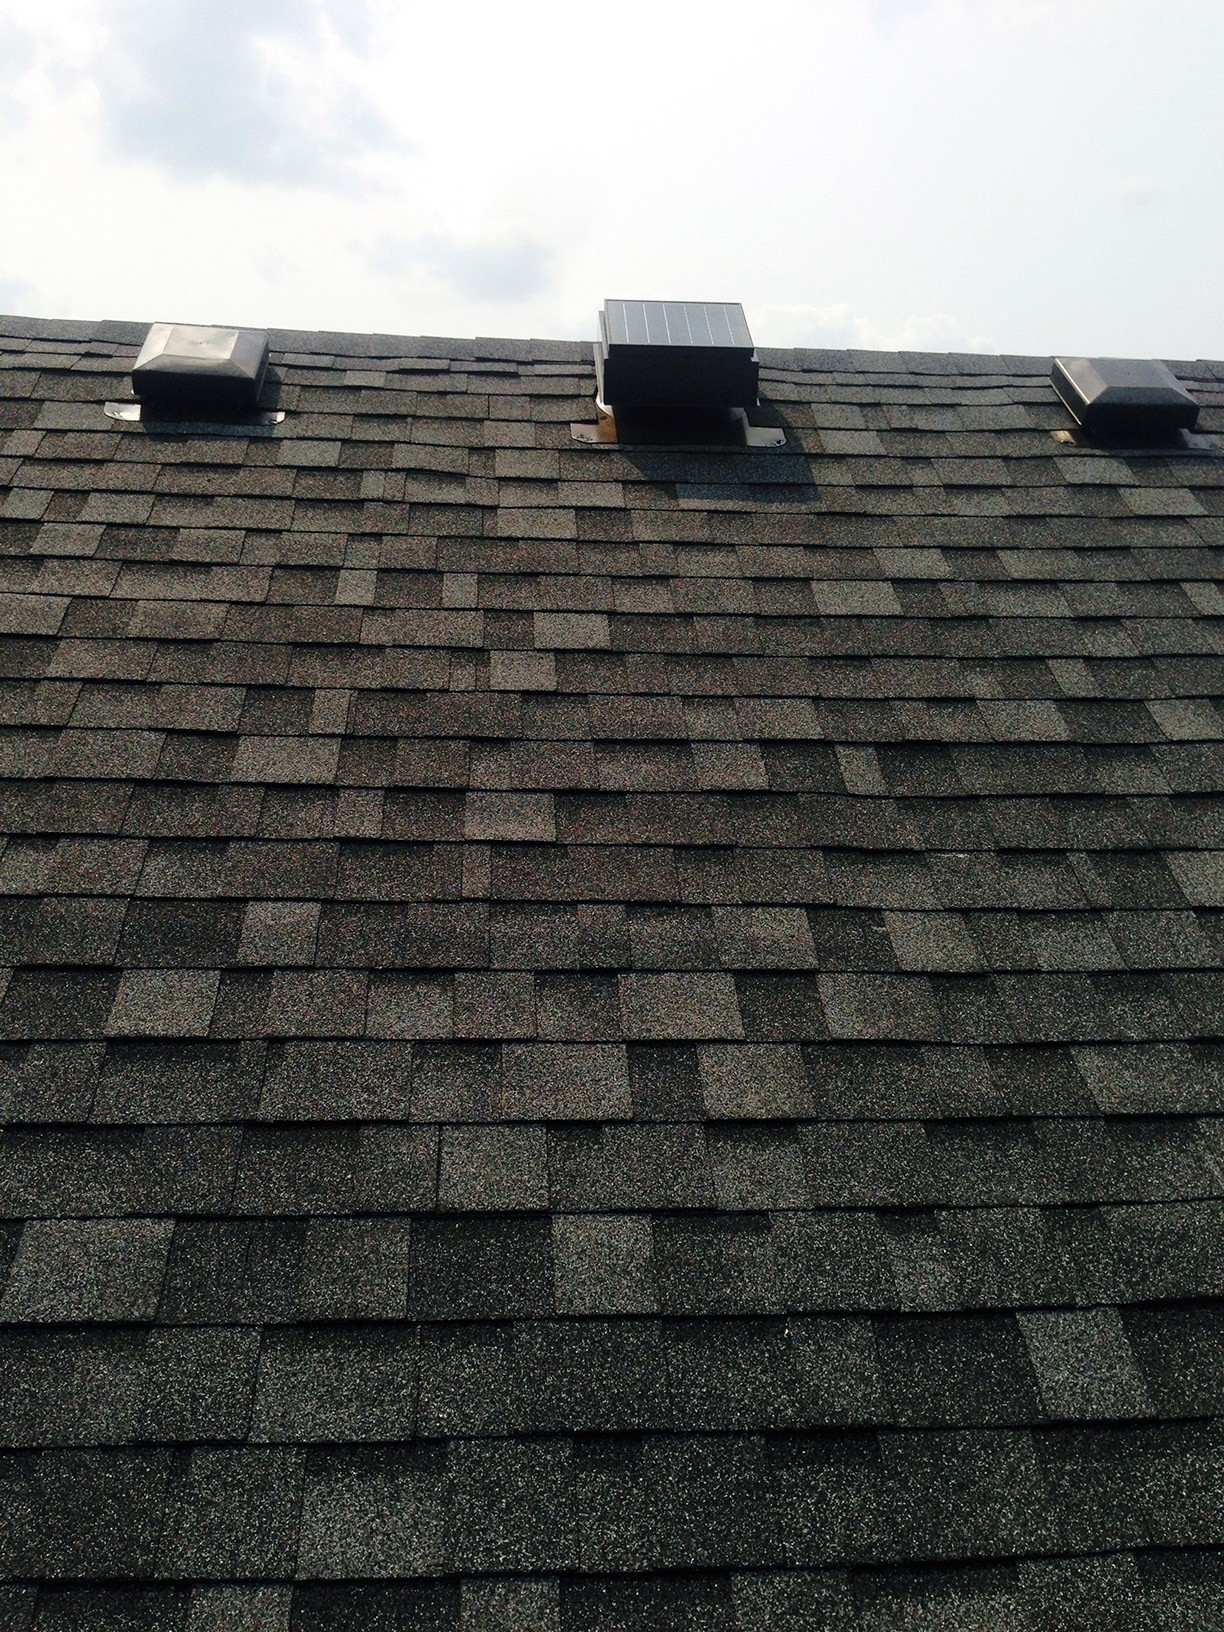 new roof - attic vents